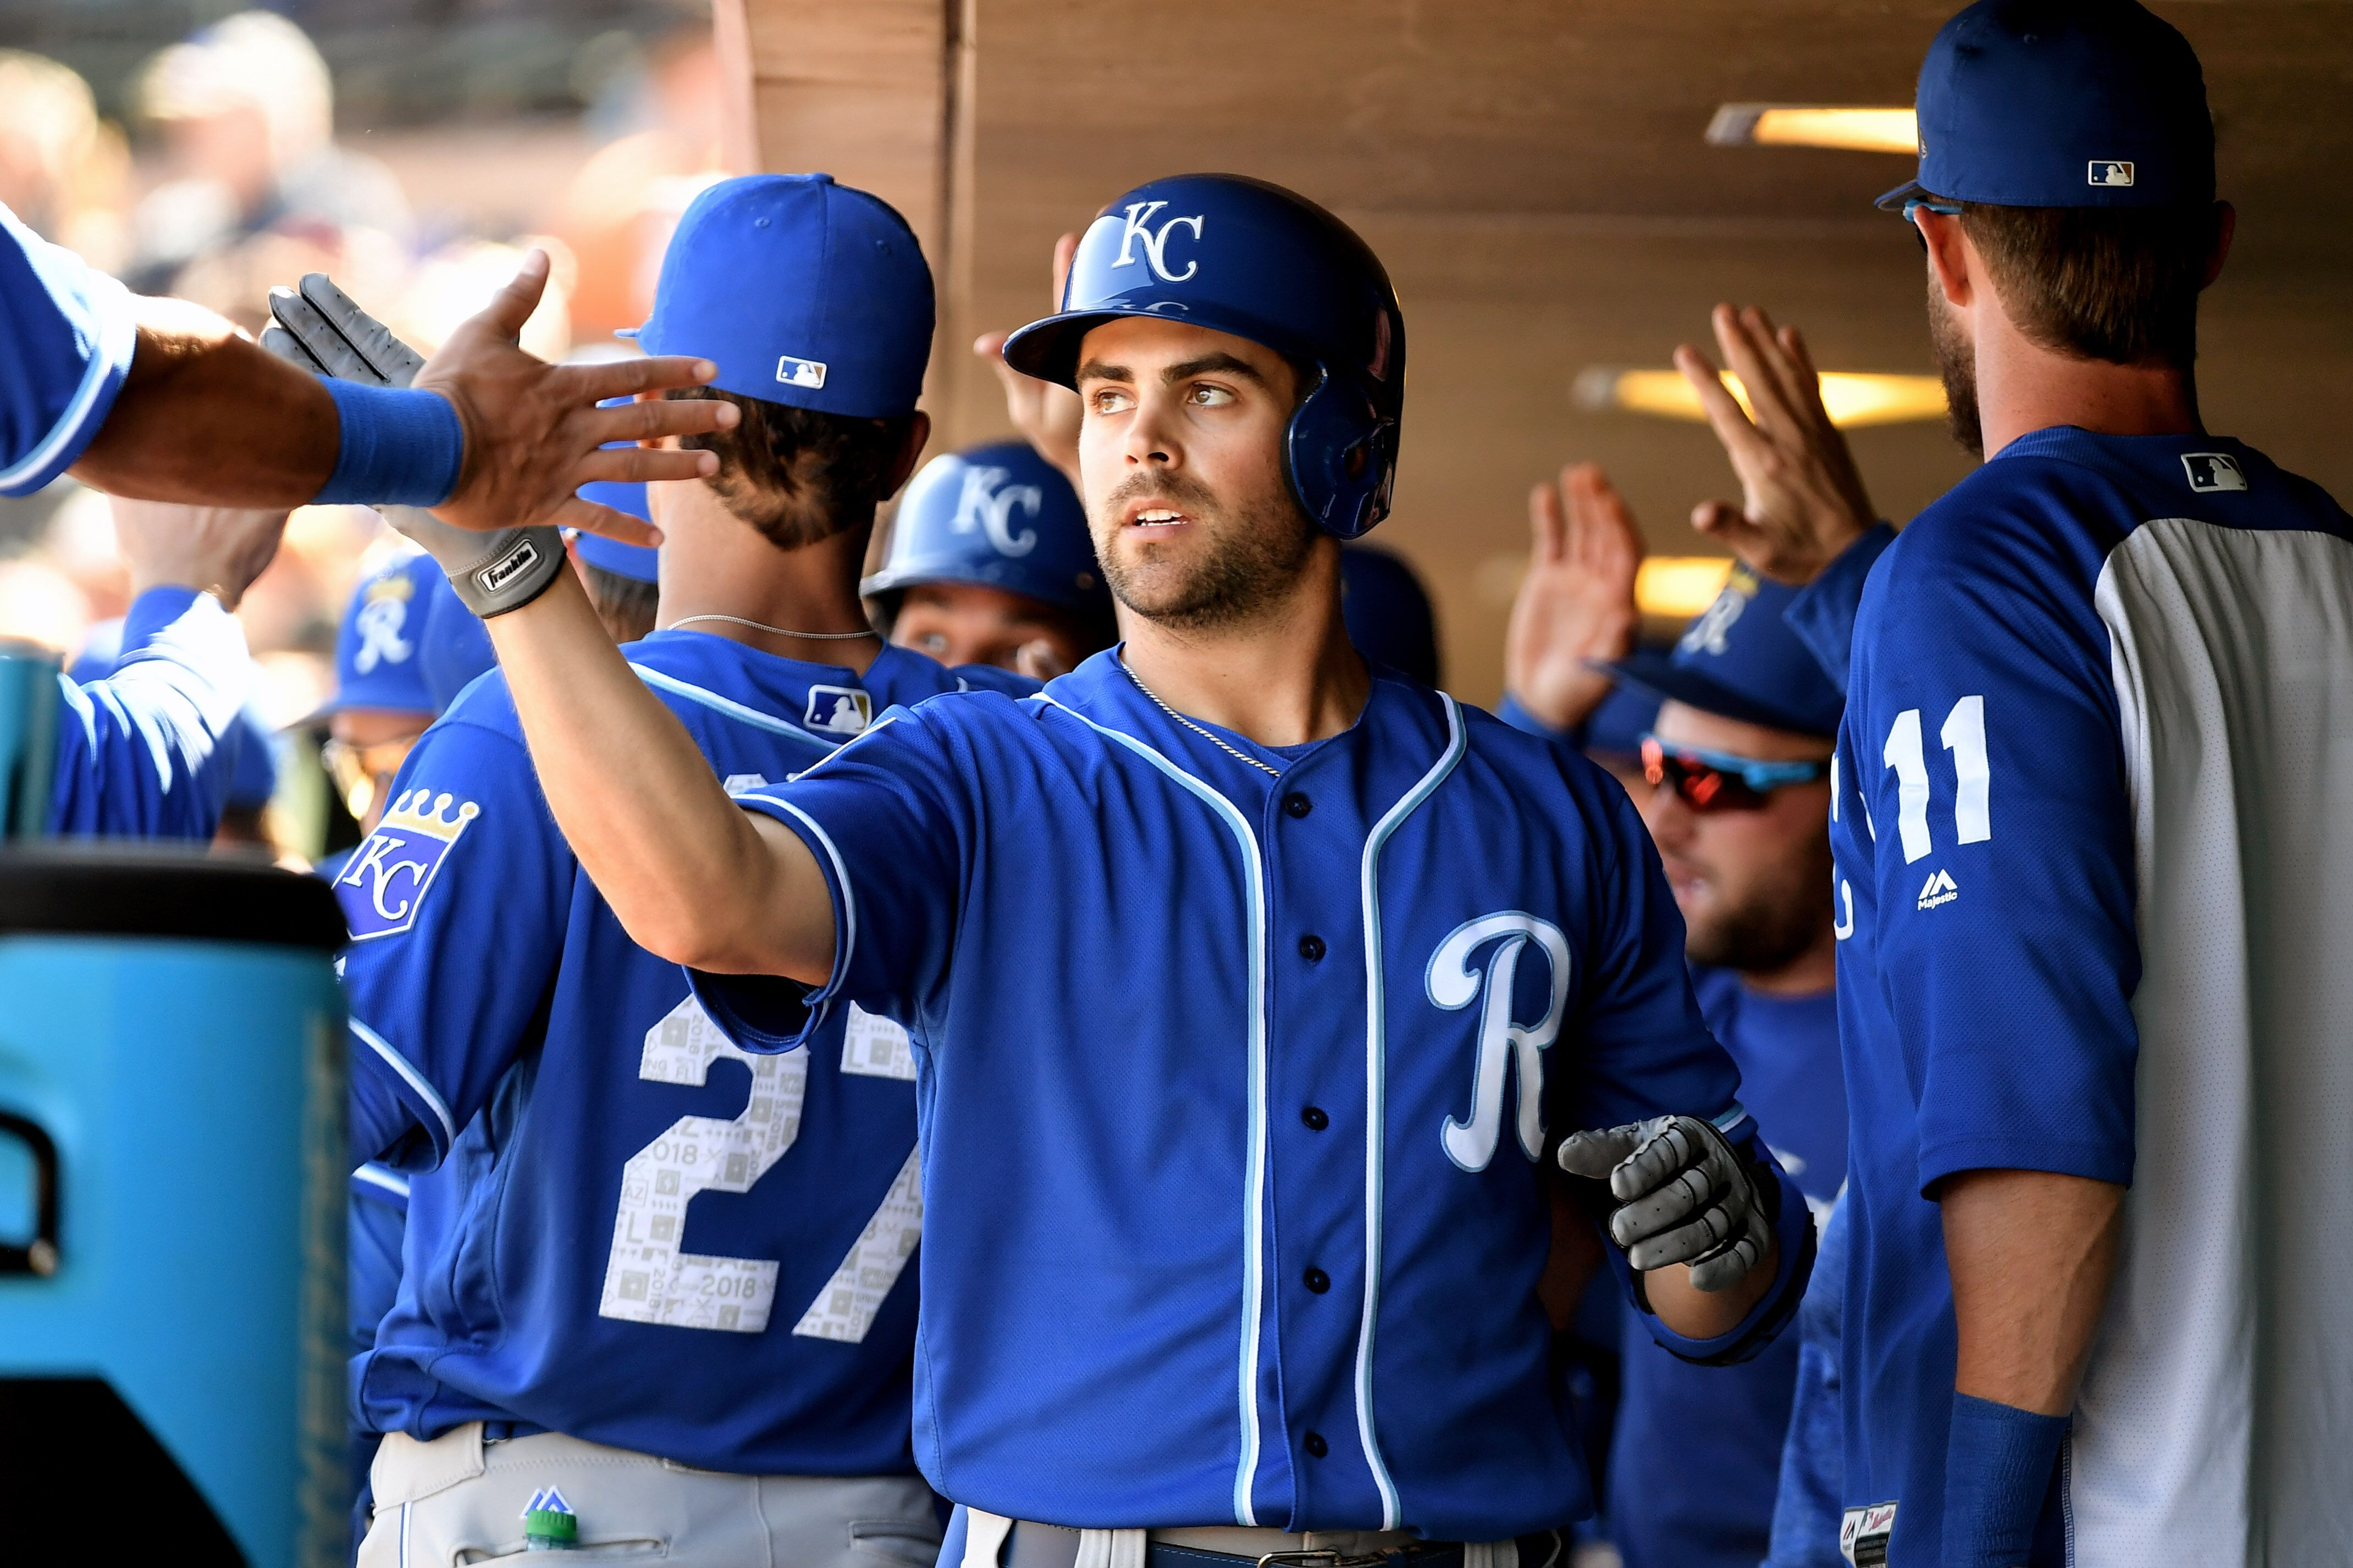 huge selection of 0e936 5e302 Kansas City Royals: How Whit Merrifield's Contract Impacts ...